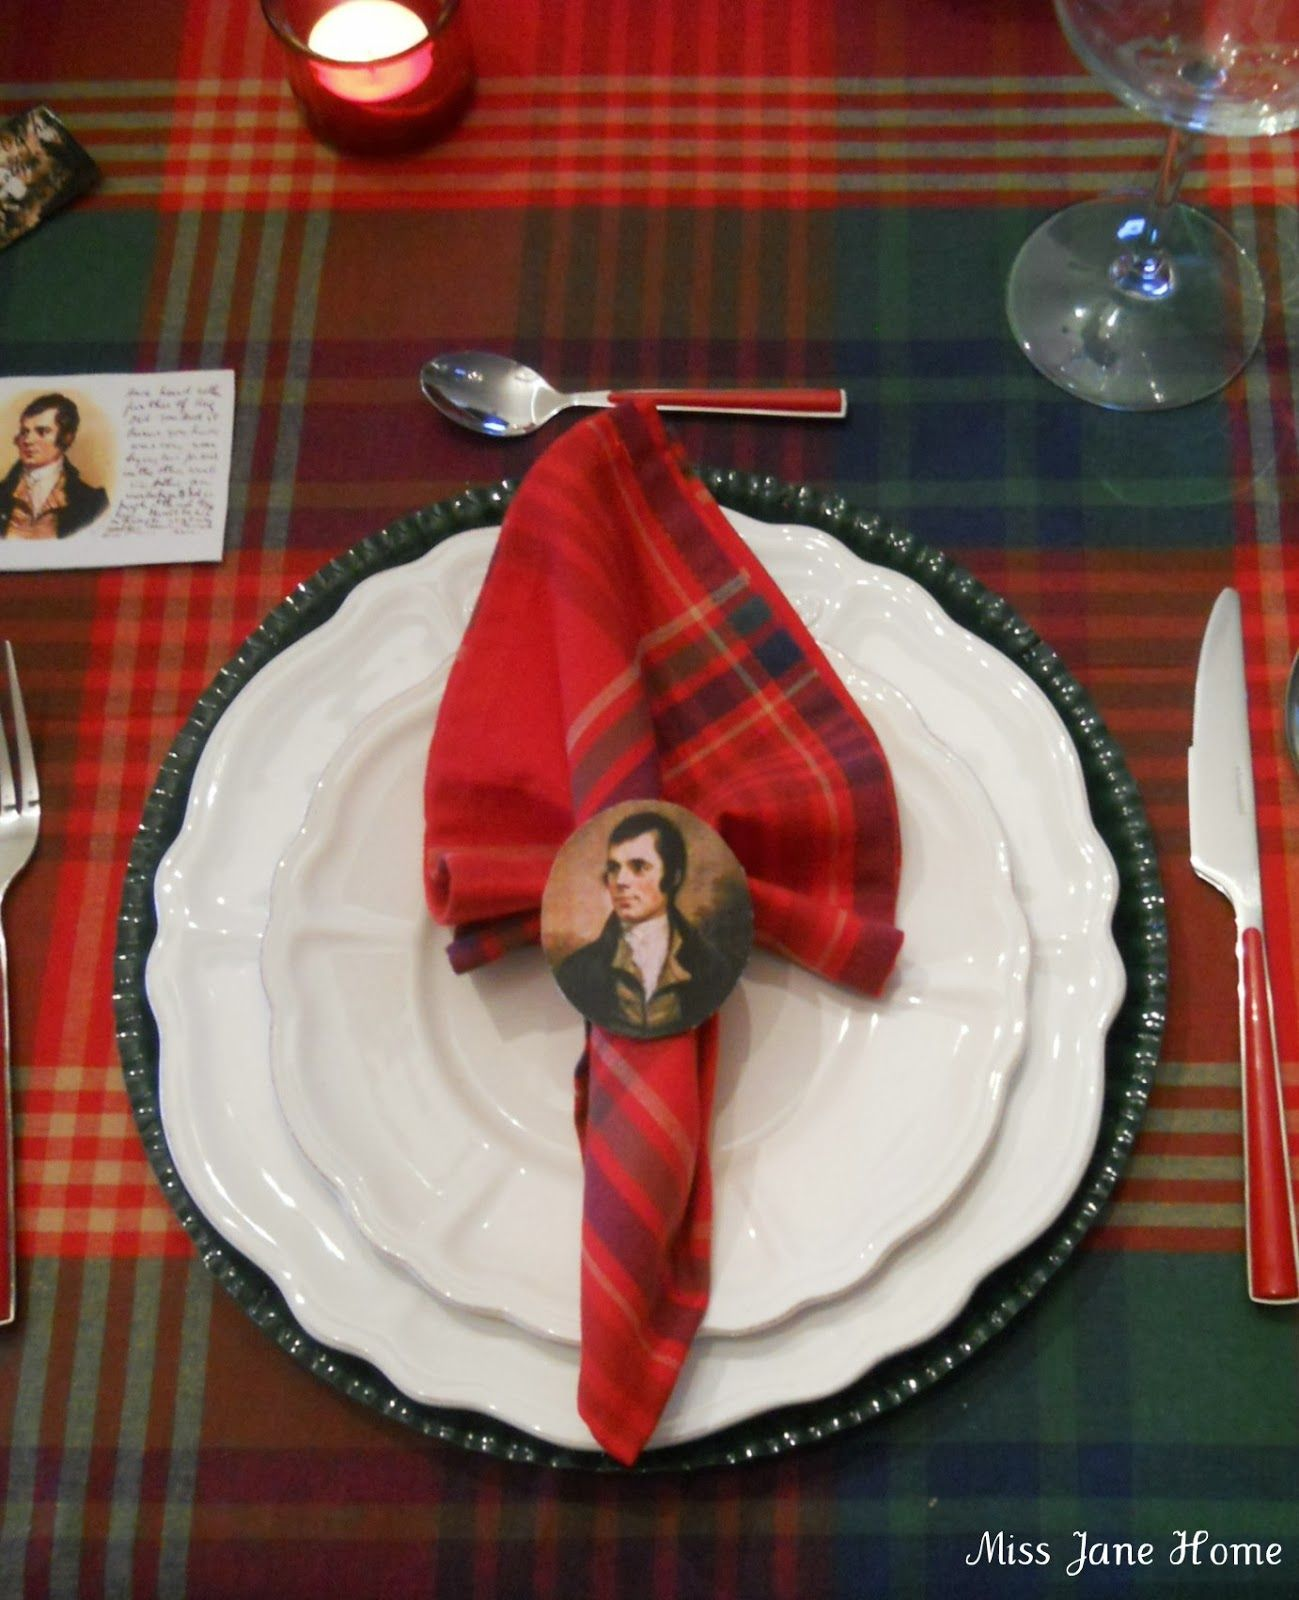 A Burns supper is a celebration of the life and poetry of the poet Robert Burns, author of many Scots poems. The suppers are normally held on or near the poet's birthday, 25 January, sometimes also known as Robert Burns Day or Burns Night.